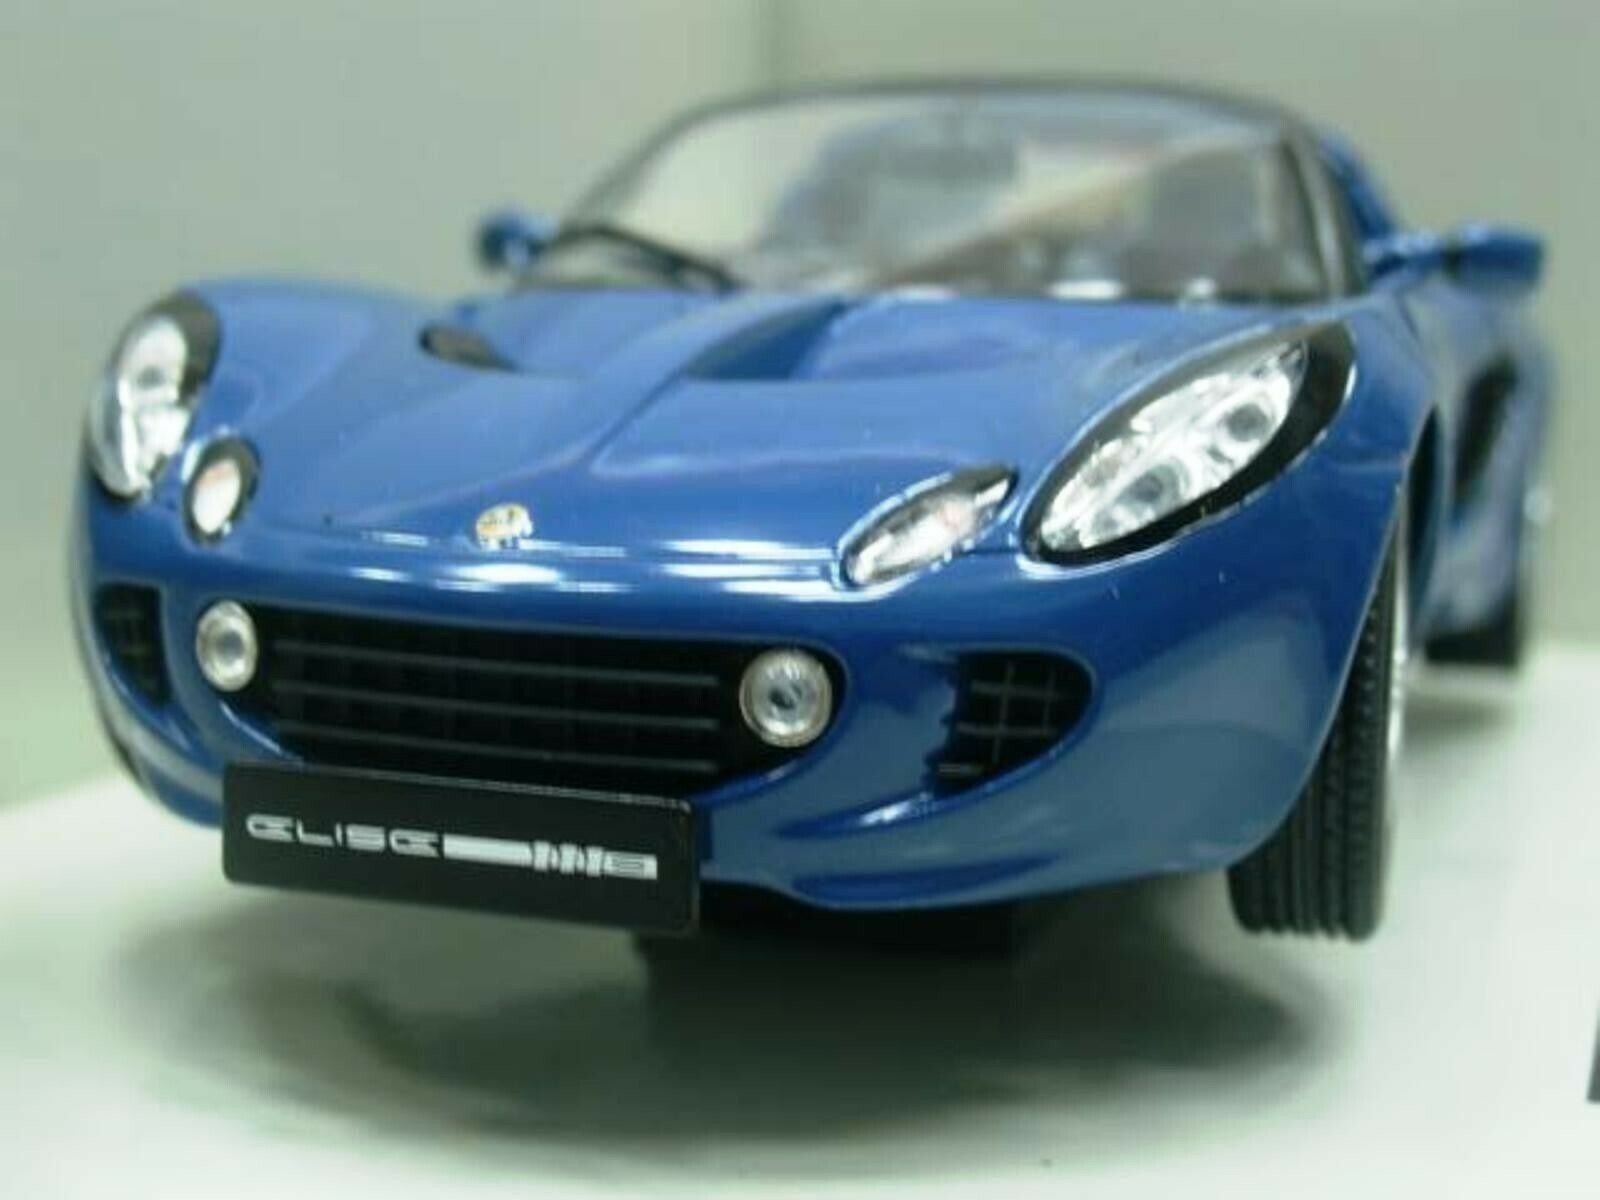 WOW EXTREMELY RARE Lotus Elise S2 111S Targa RHD 2002 bluee 1 18 Revell-Auto Art